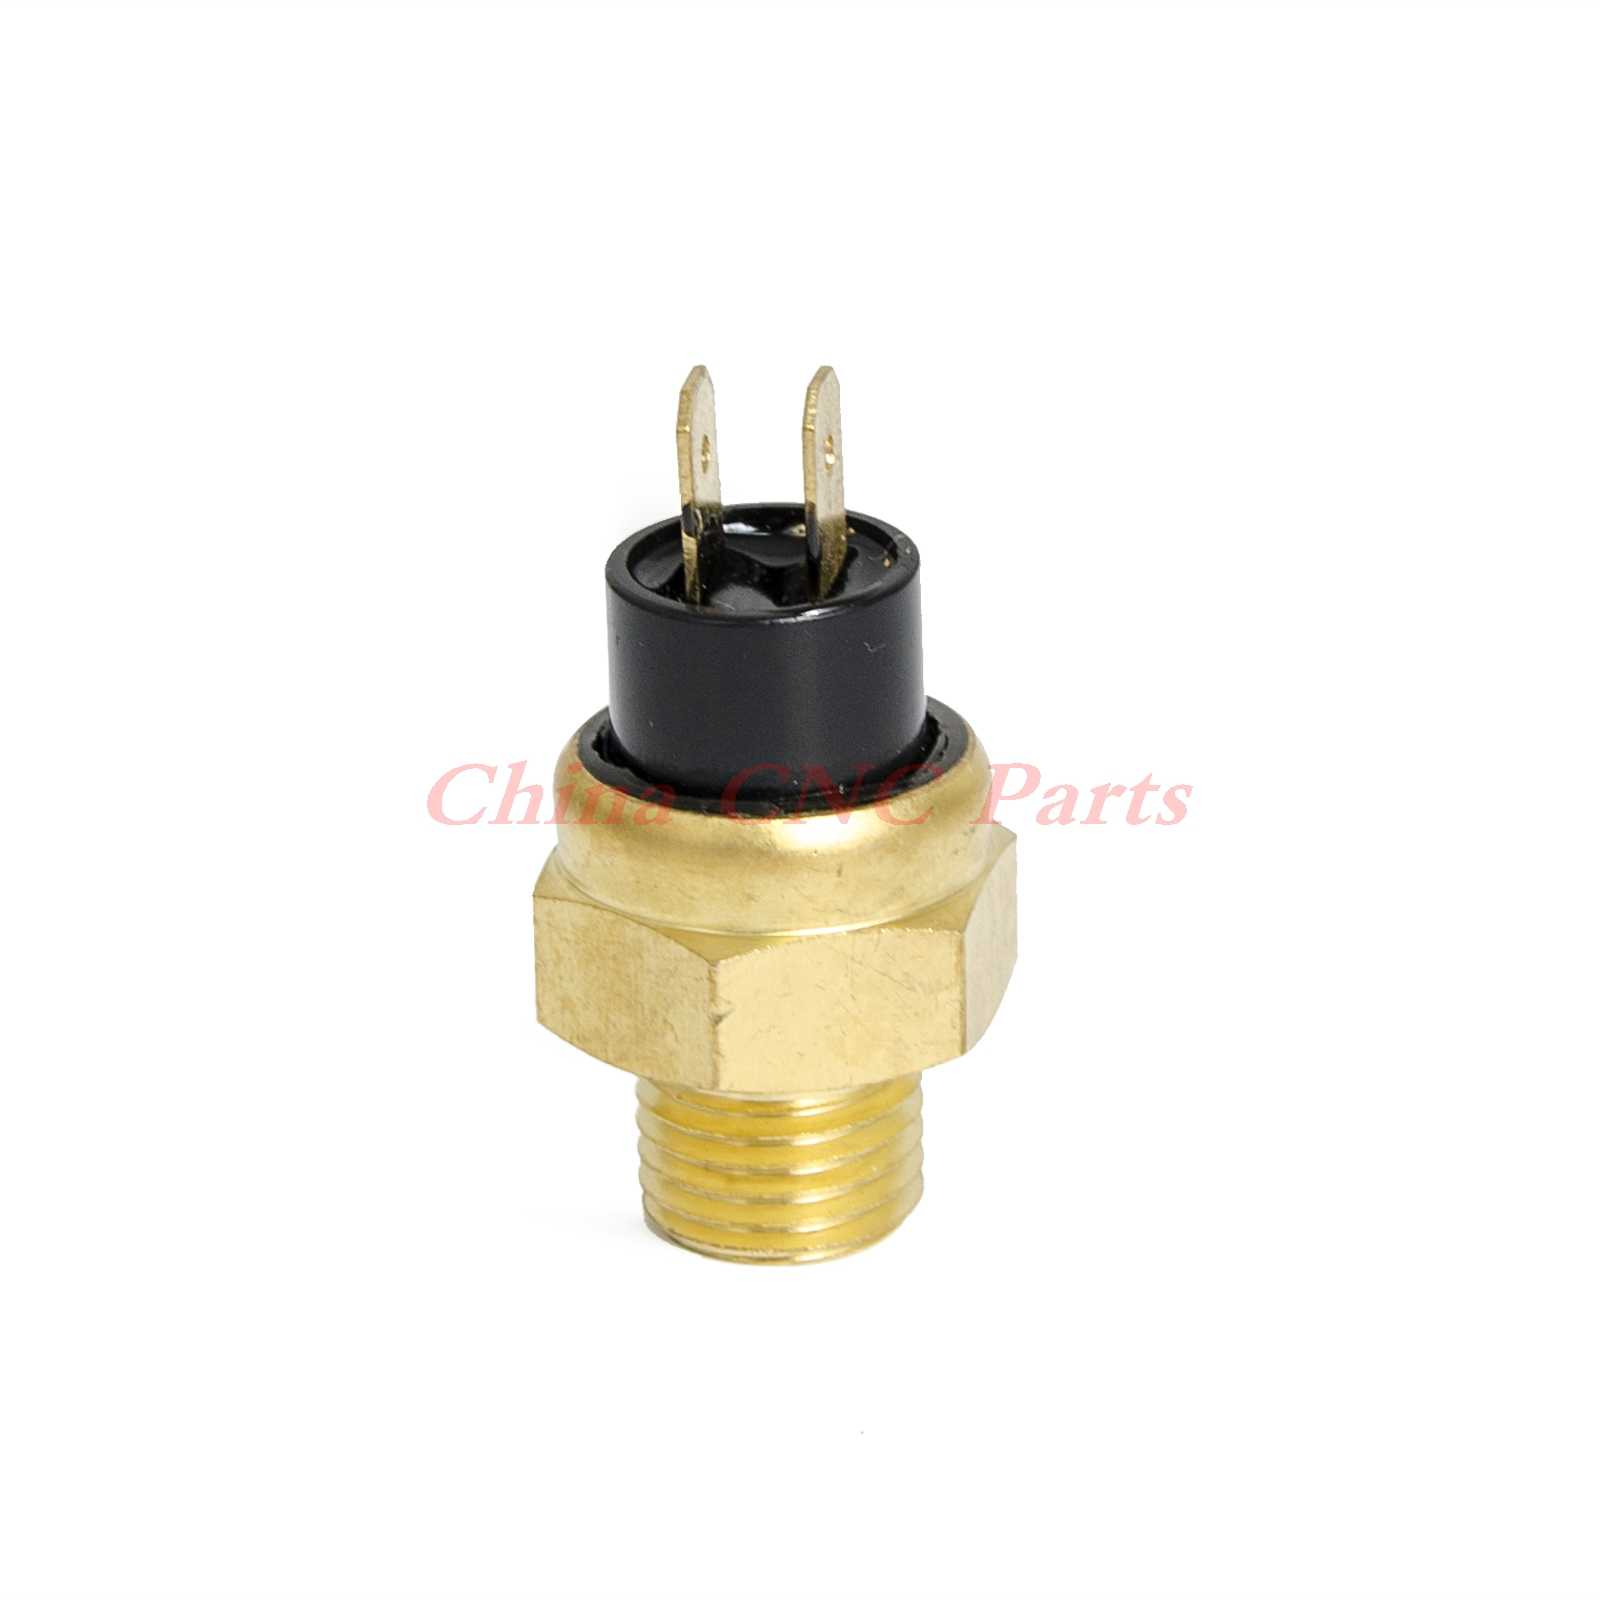 Coolant Temperature Switch Sensor Water Temp Radiator Cooling Fan M14x1.5mm 85 For KTM 250 350 400 450 525 530 #59011079000